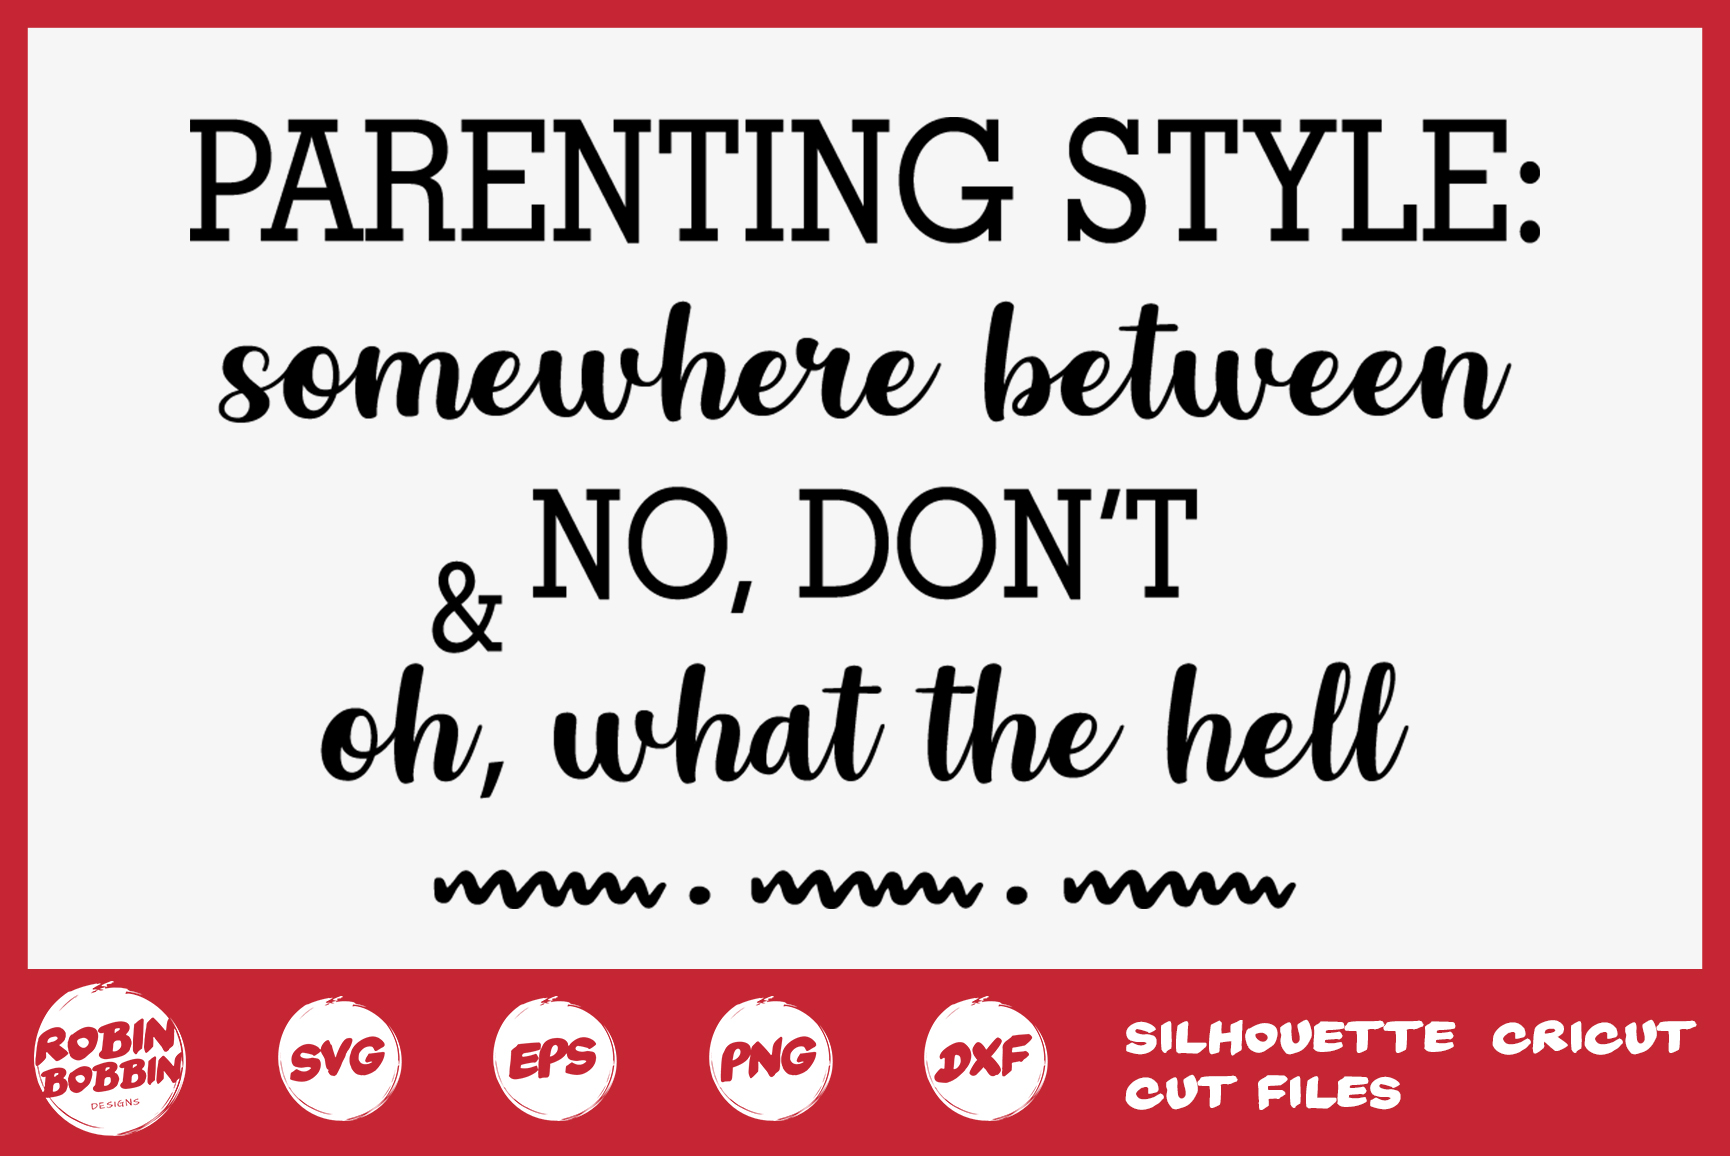 Parenting Style Svg, Mom Svg, Mom Life Svg - Mother SVG example image 1